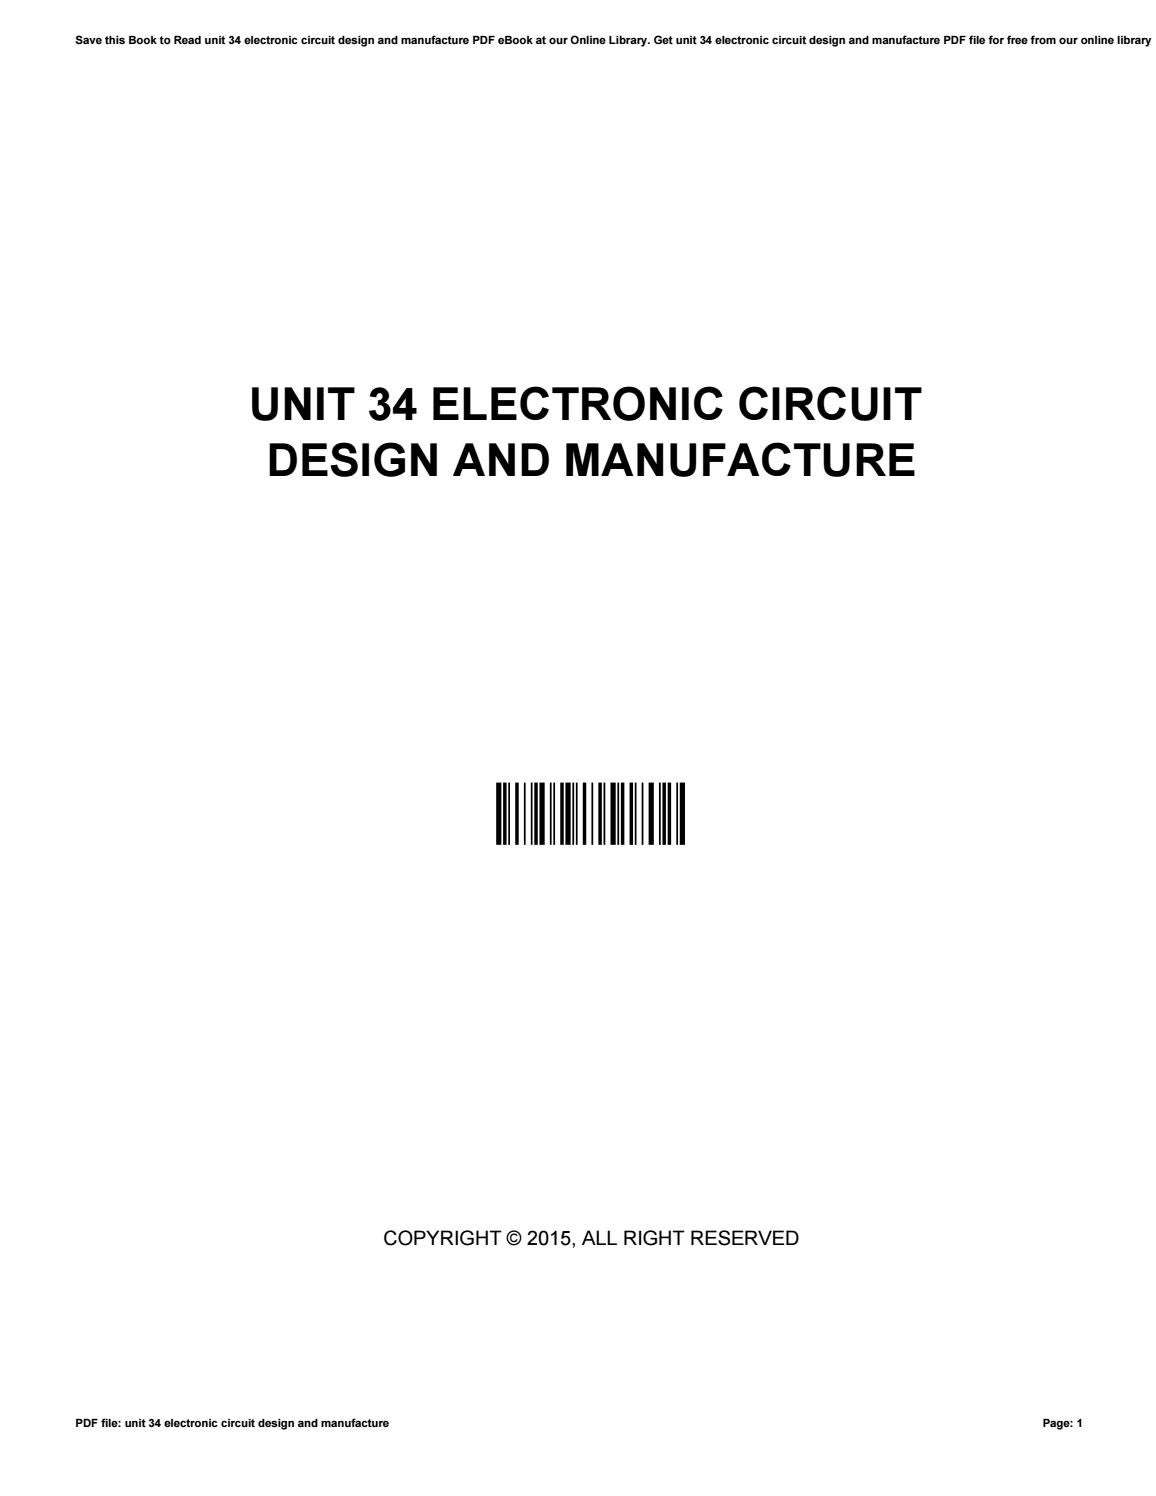 Electronic Circuit Design Pdf